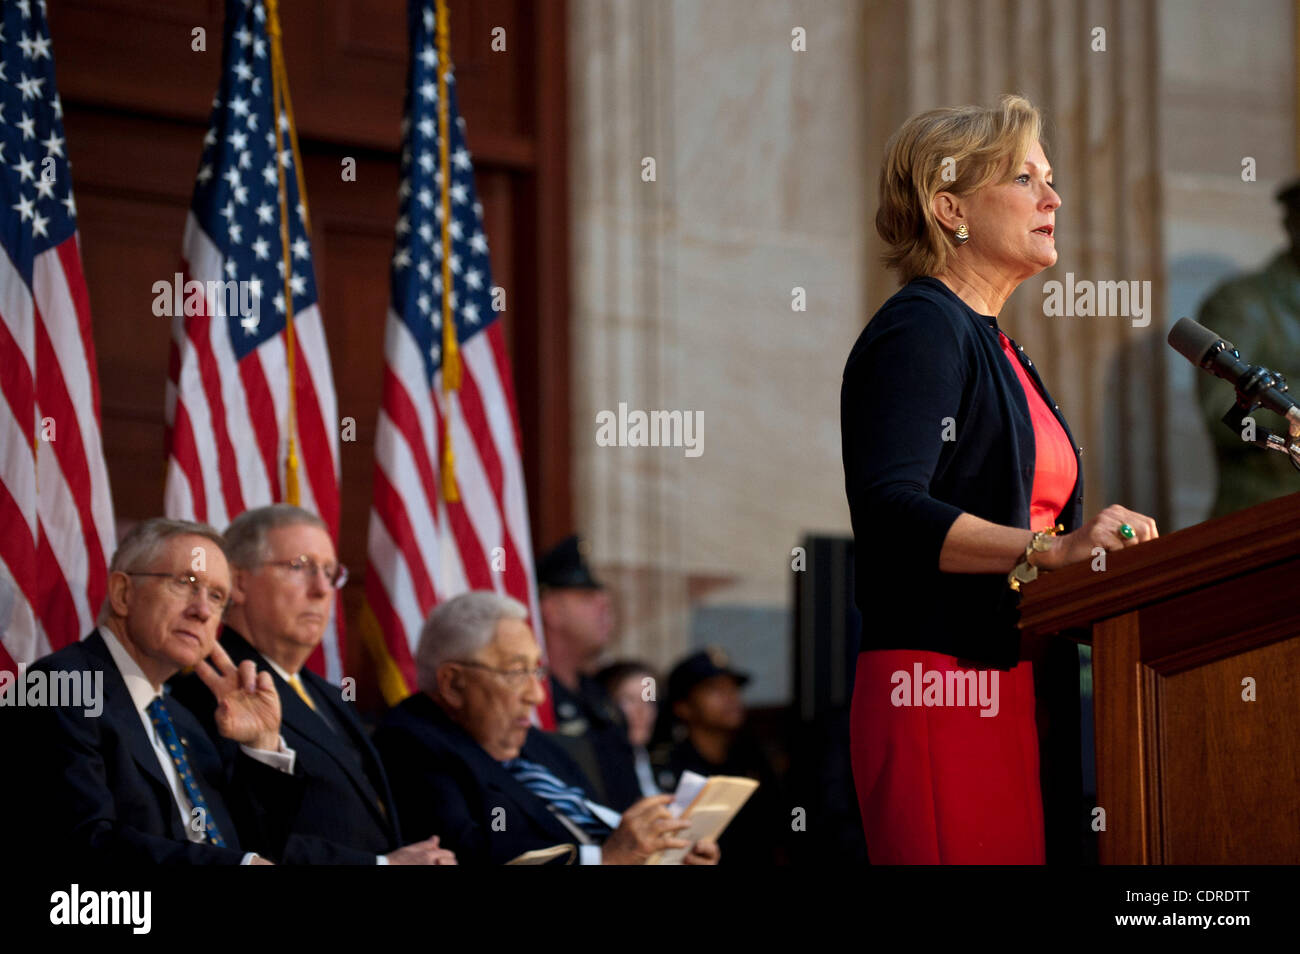 May 3, 2011 - Washington, District of Columbia, U.S. - SUSAN FORD BALES, daugher of the late President Gerald R. - Stock Image